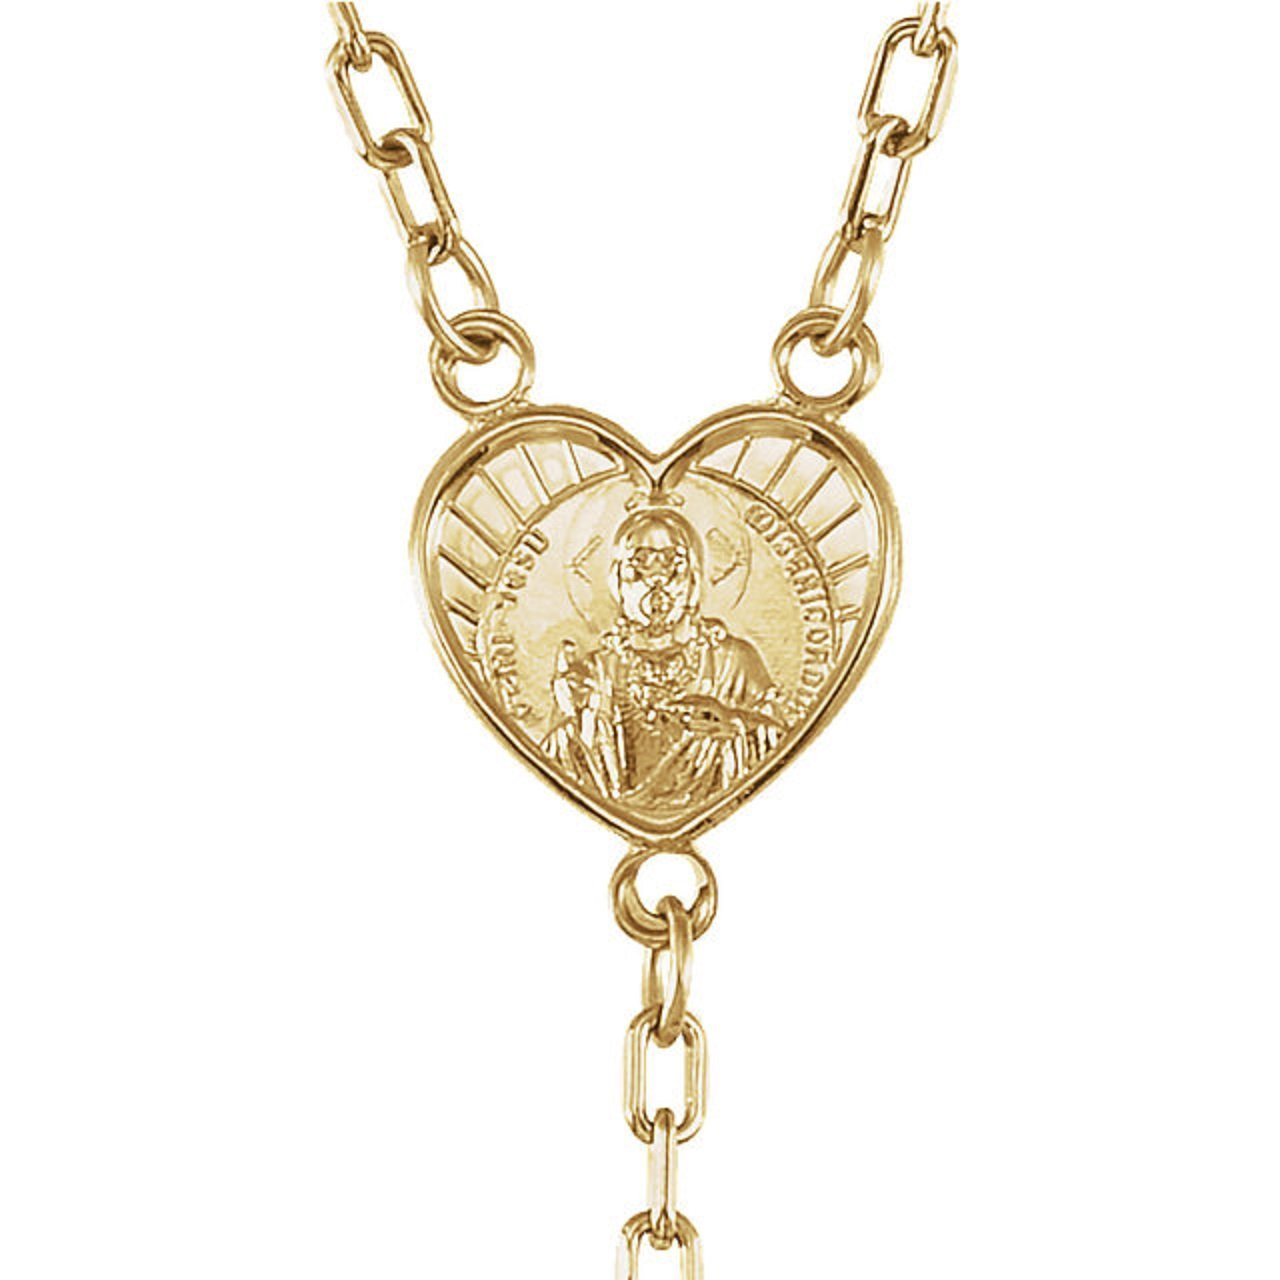 Roxx Fine Jewelry 14K Gold Filled and Rose Quartz Ornate Sacred Heart Center 27'' Rosary Necklace 2.00mm Beads by Roxx Fine Jewelry (Image #4)